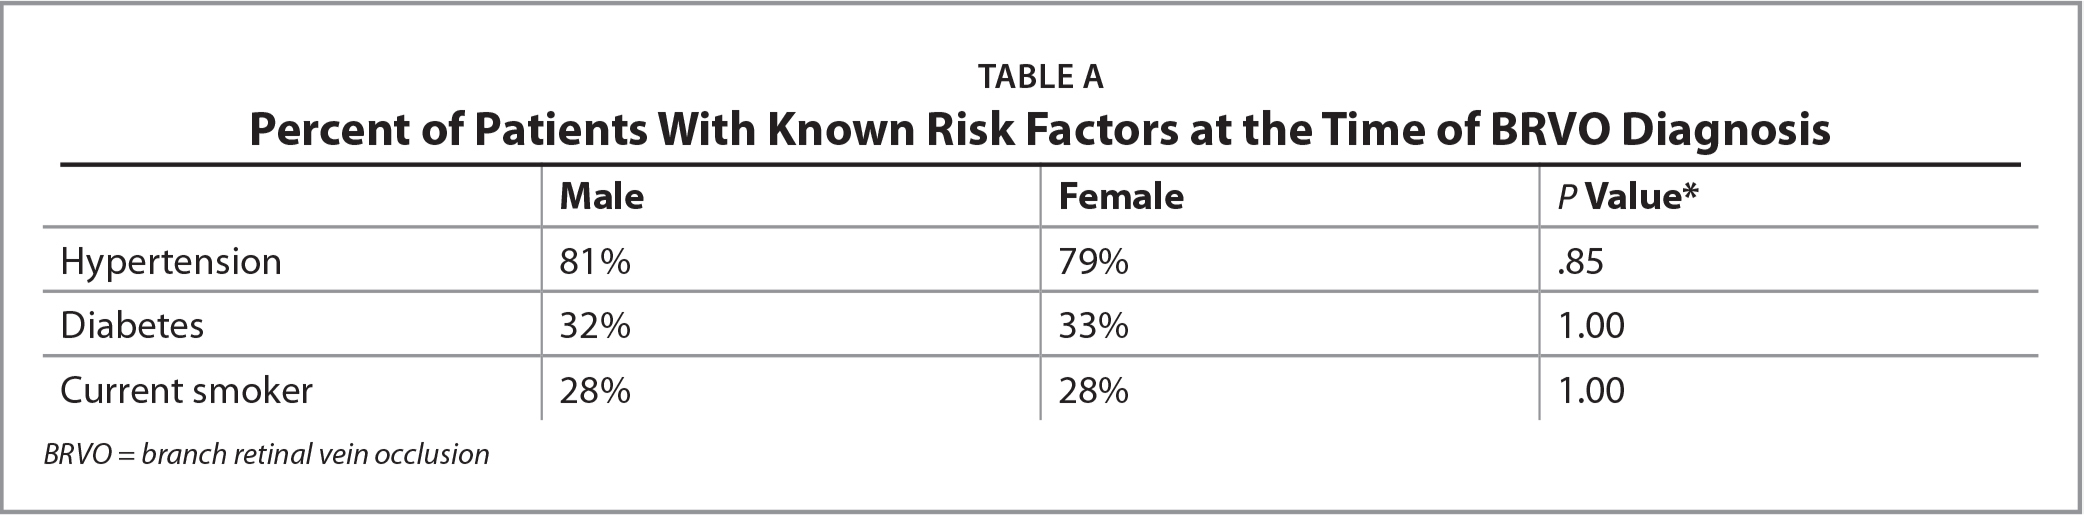 Percent of Patients With Known Risk Factors at the Time of BRVO Diagnosis